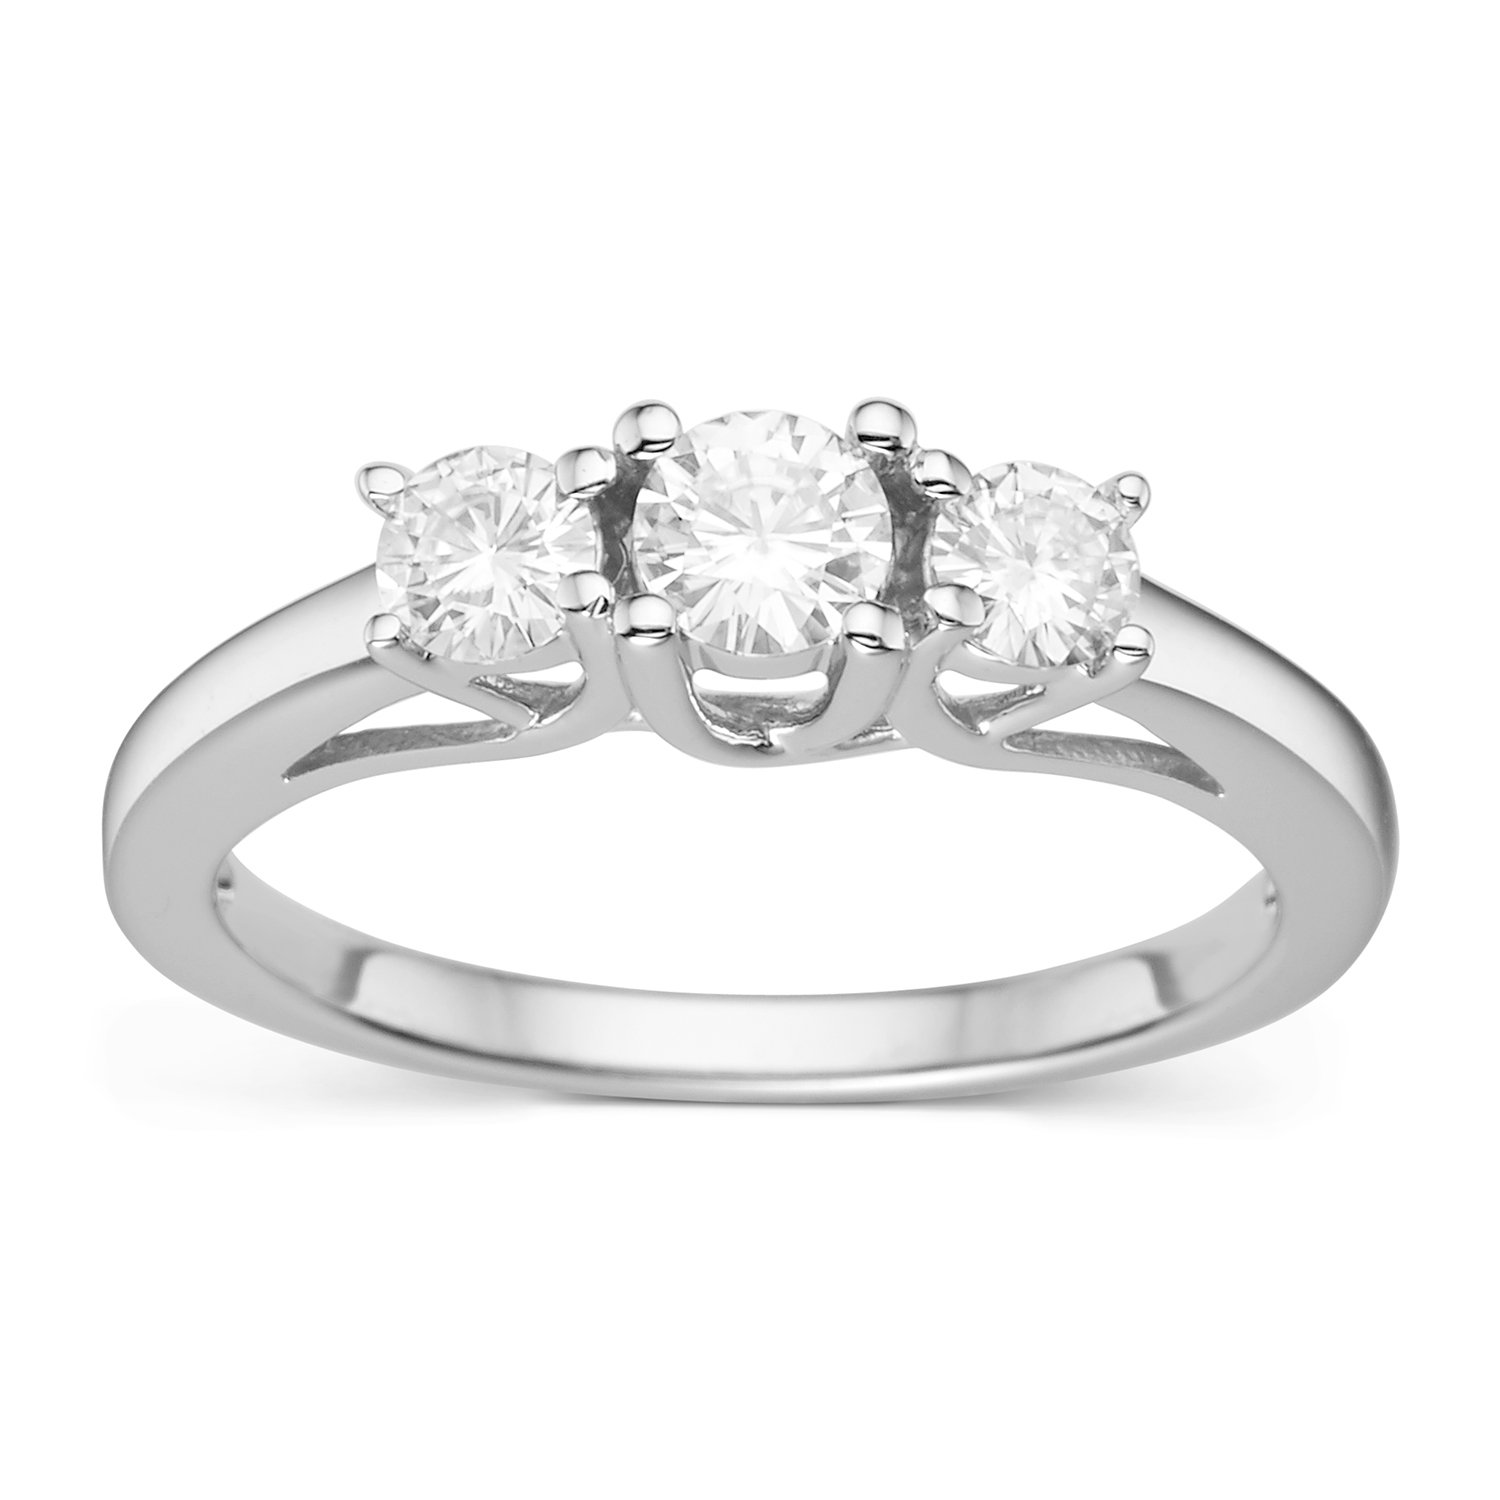 Forever Classic Round Cut 6.0mm Moissanite Engagement Ring-size 5, 1.46cttw DEW By Charles & Colvard